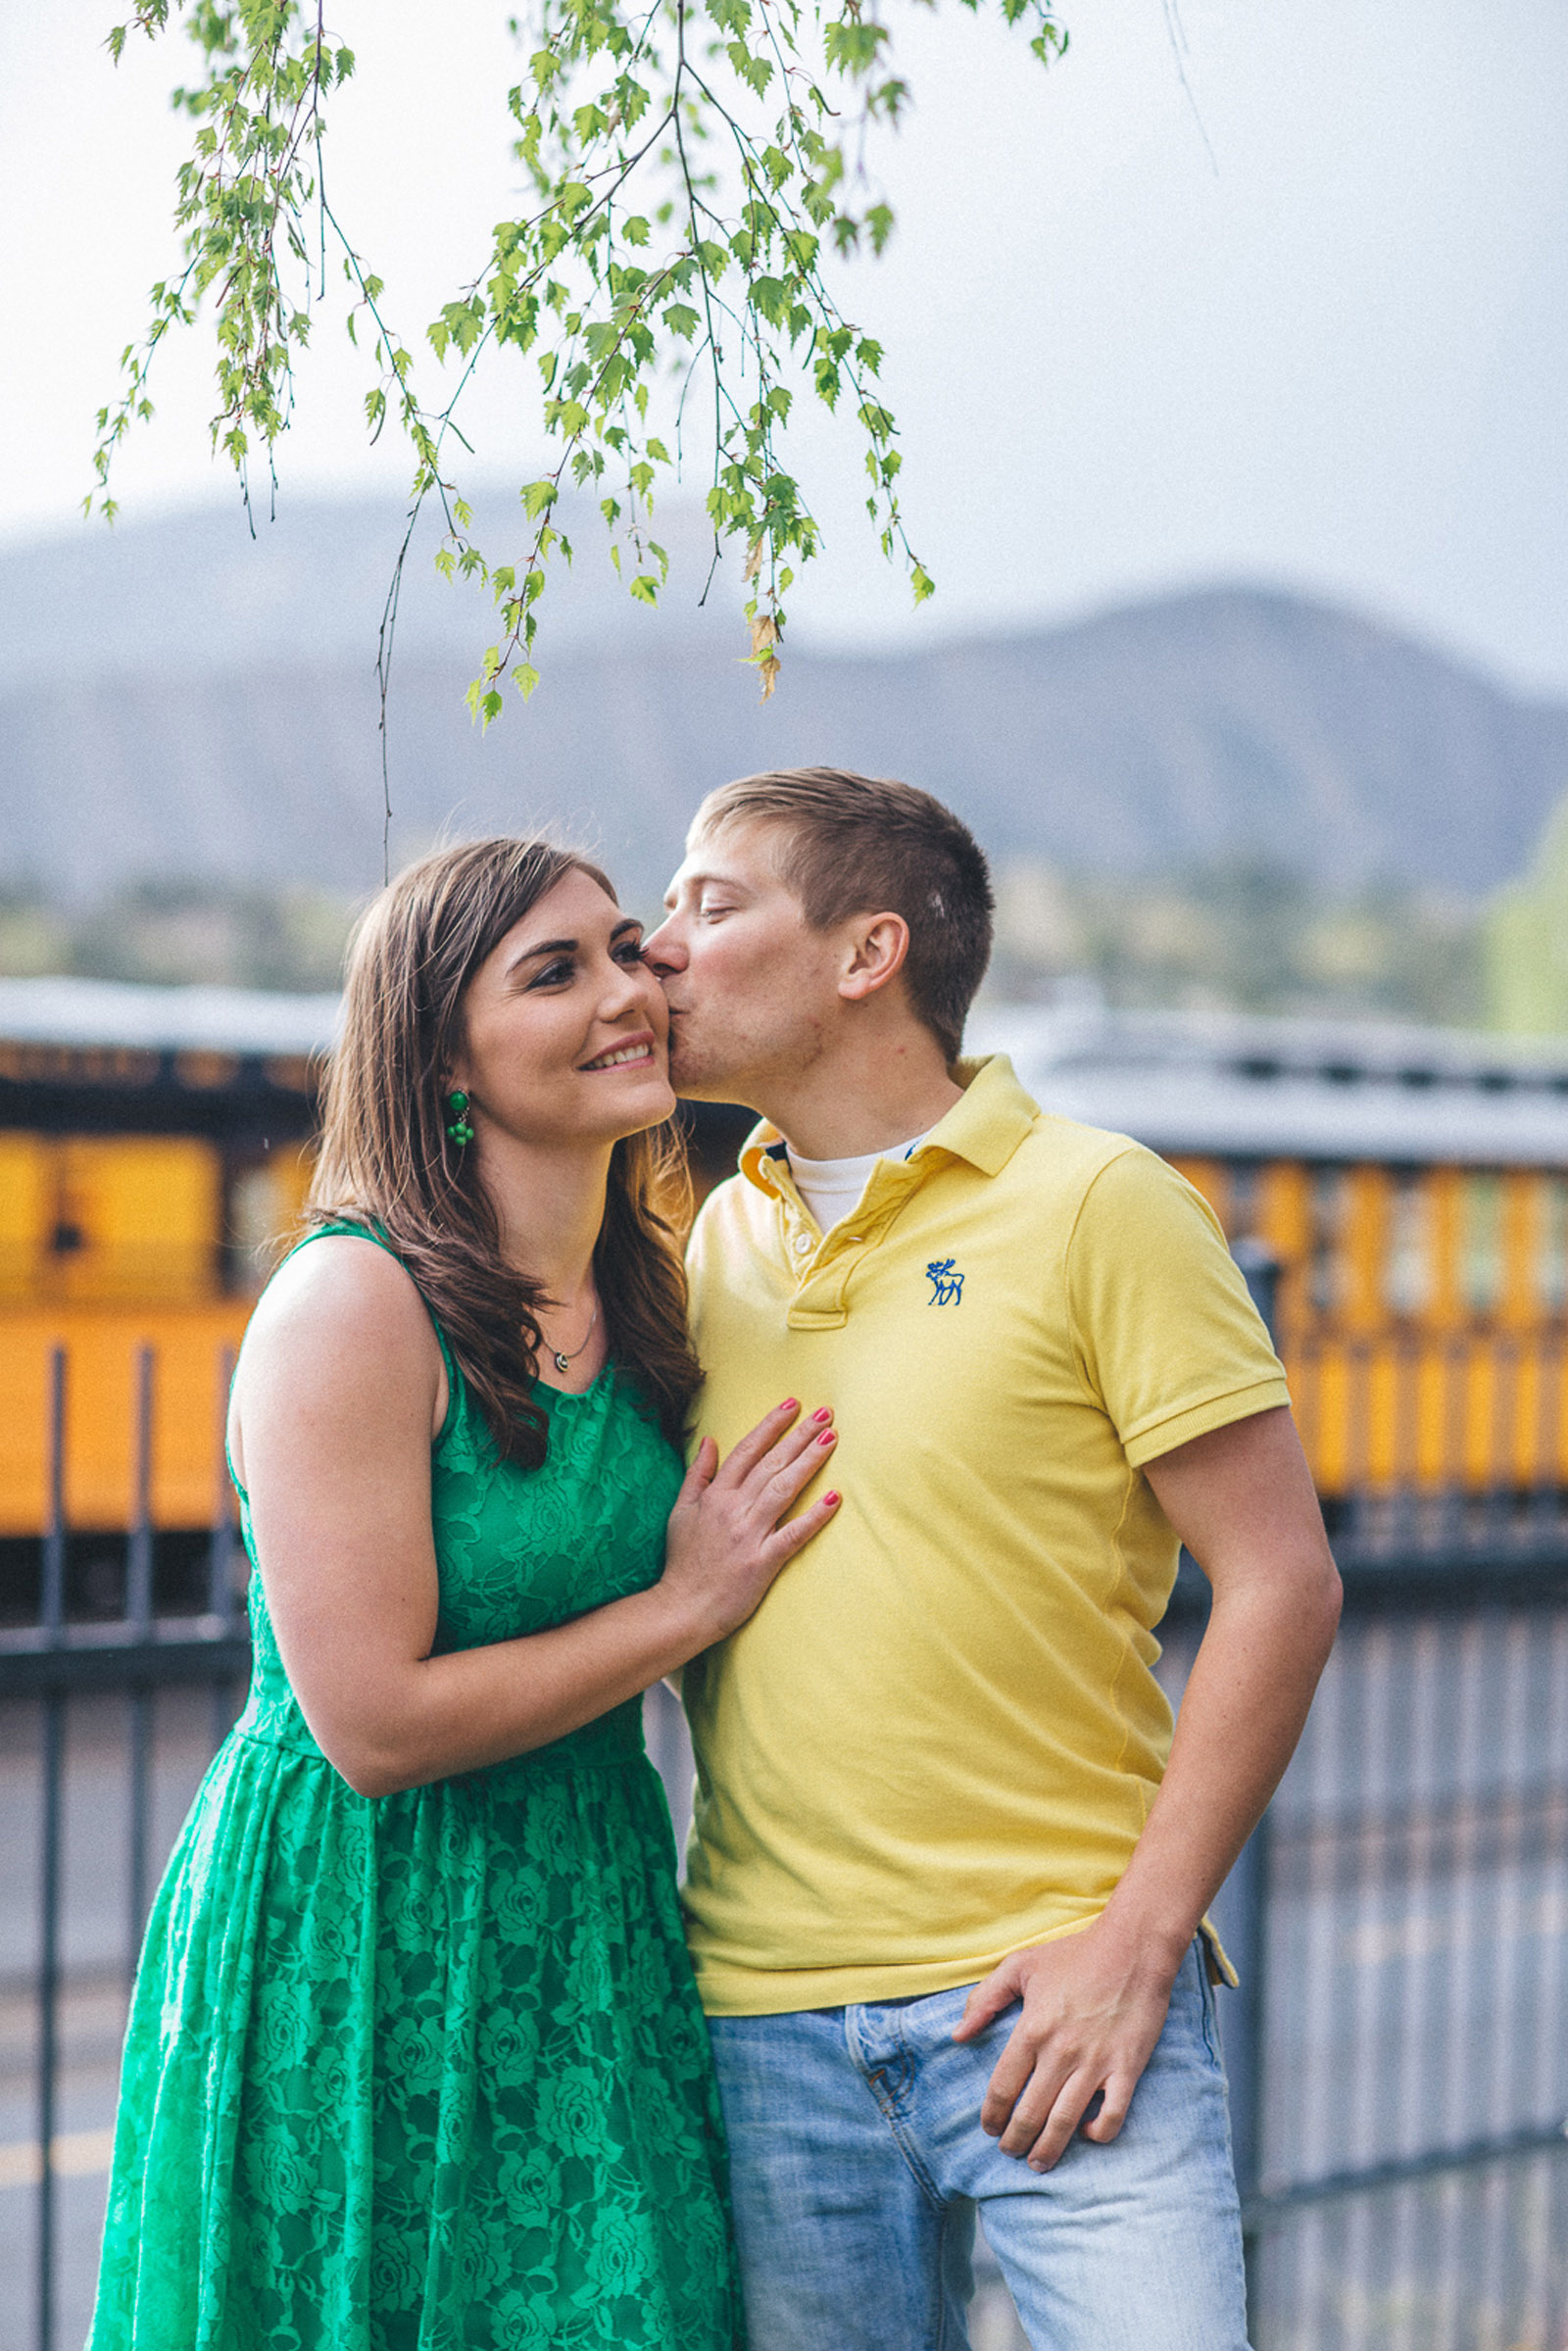 058-engagement-trees-fun-wedding-train-laughing-durango-colorado-farmington-candid-new-mexico